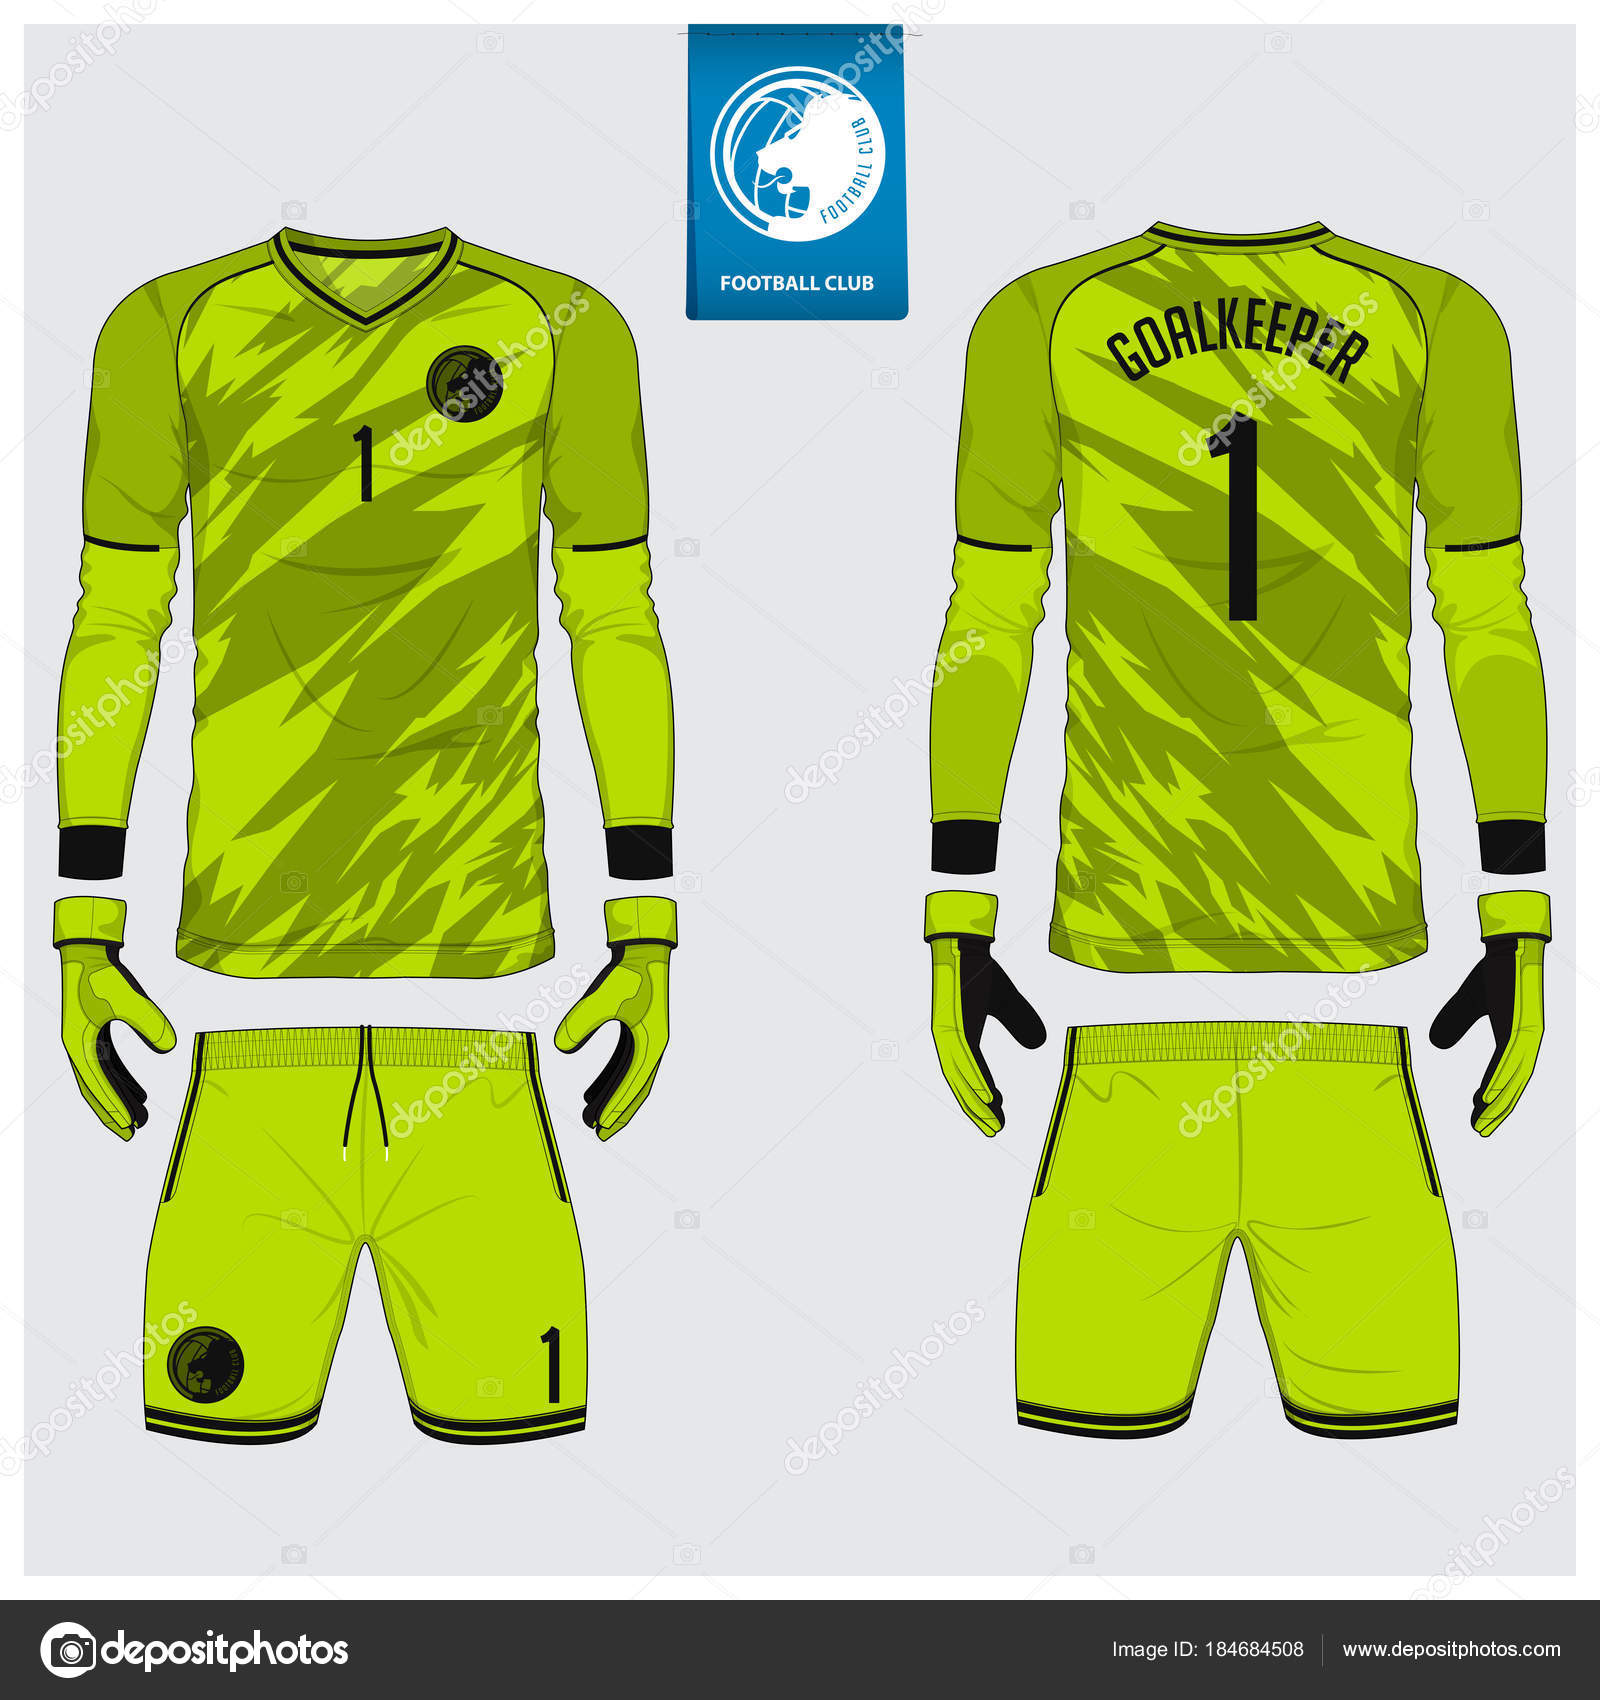 59f70b2c932 Goalkeeper jersey or soccer kit